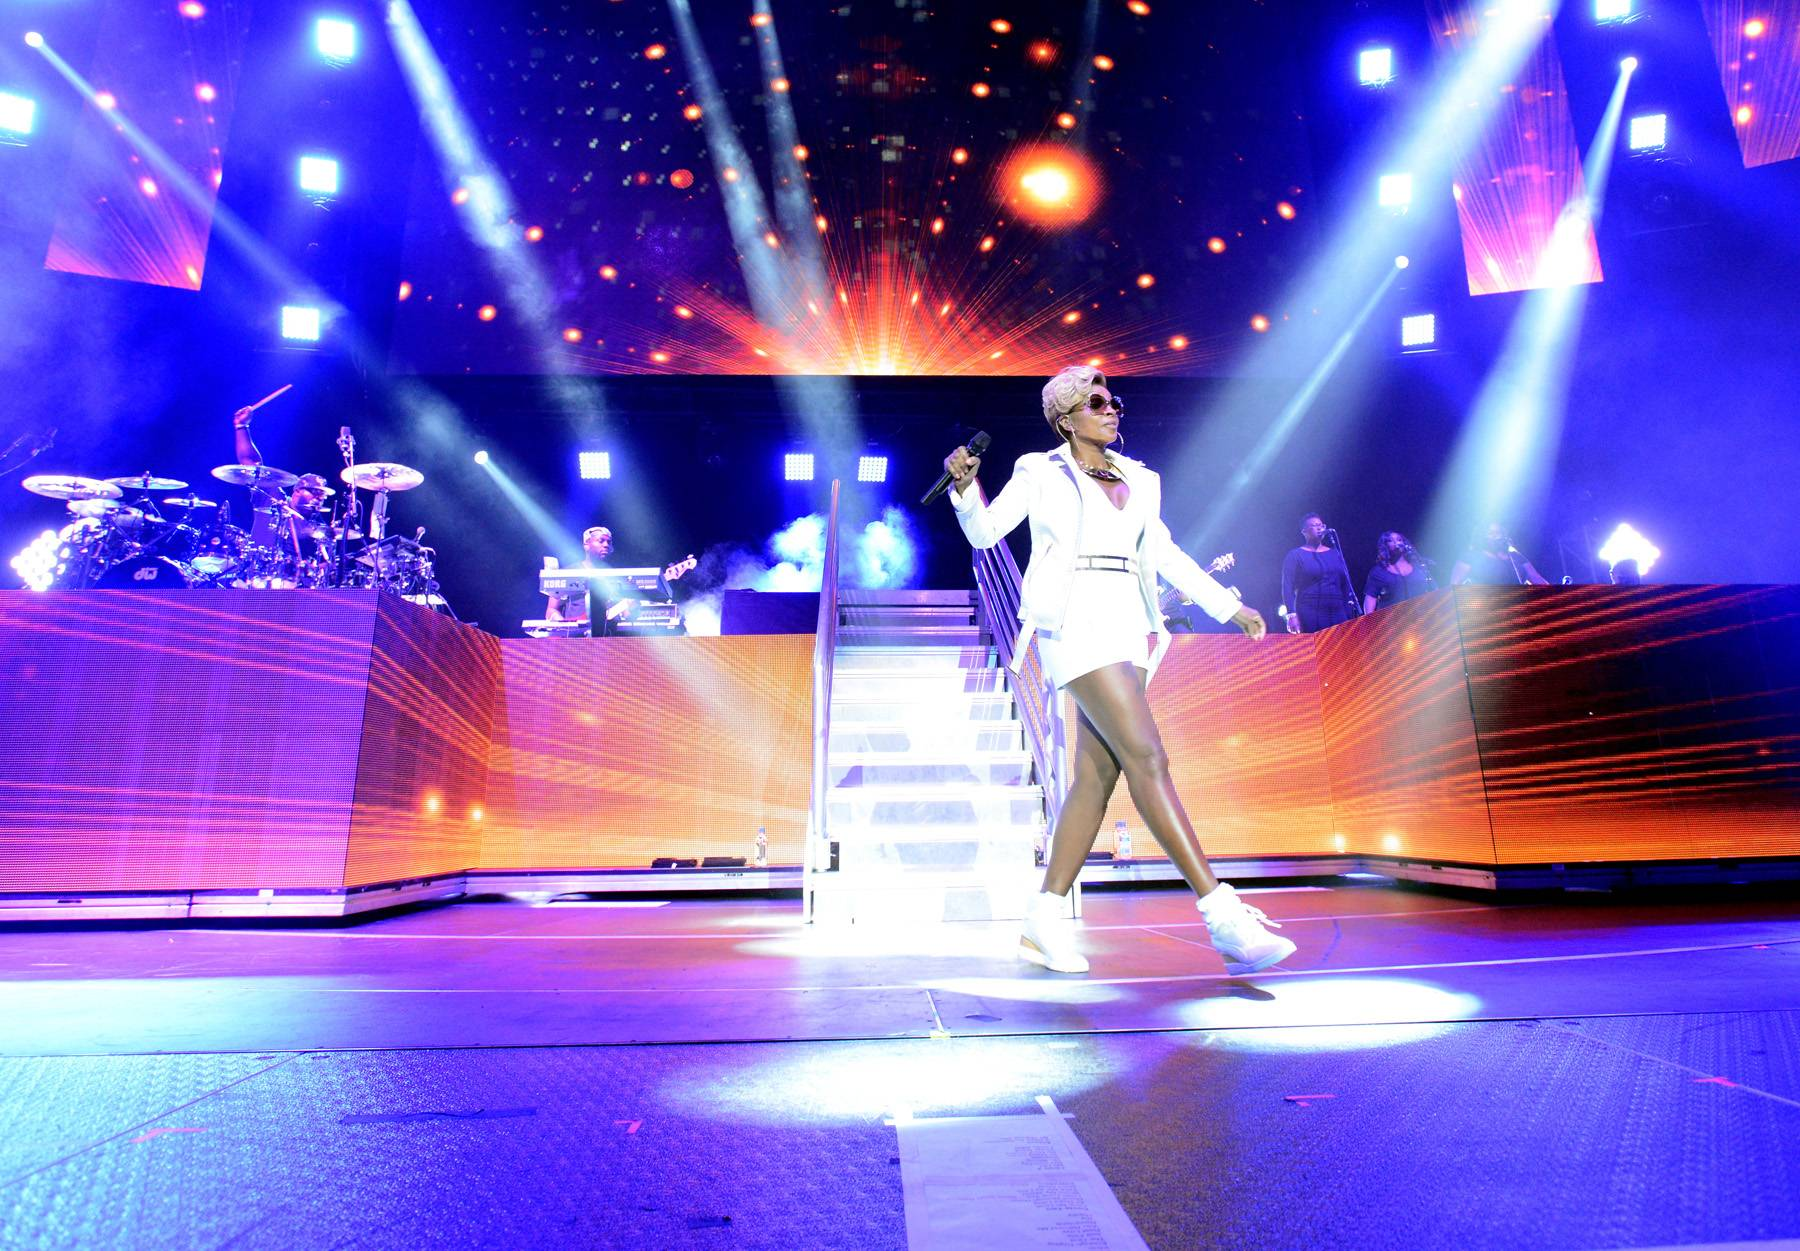 Soul 4 Real - Mary J. Blige brought the house down at the Staples Center like only the Queen of Hip Hop Soul can.(Photo by Earl Gibson/BET/Getty Images for BET)